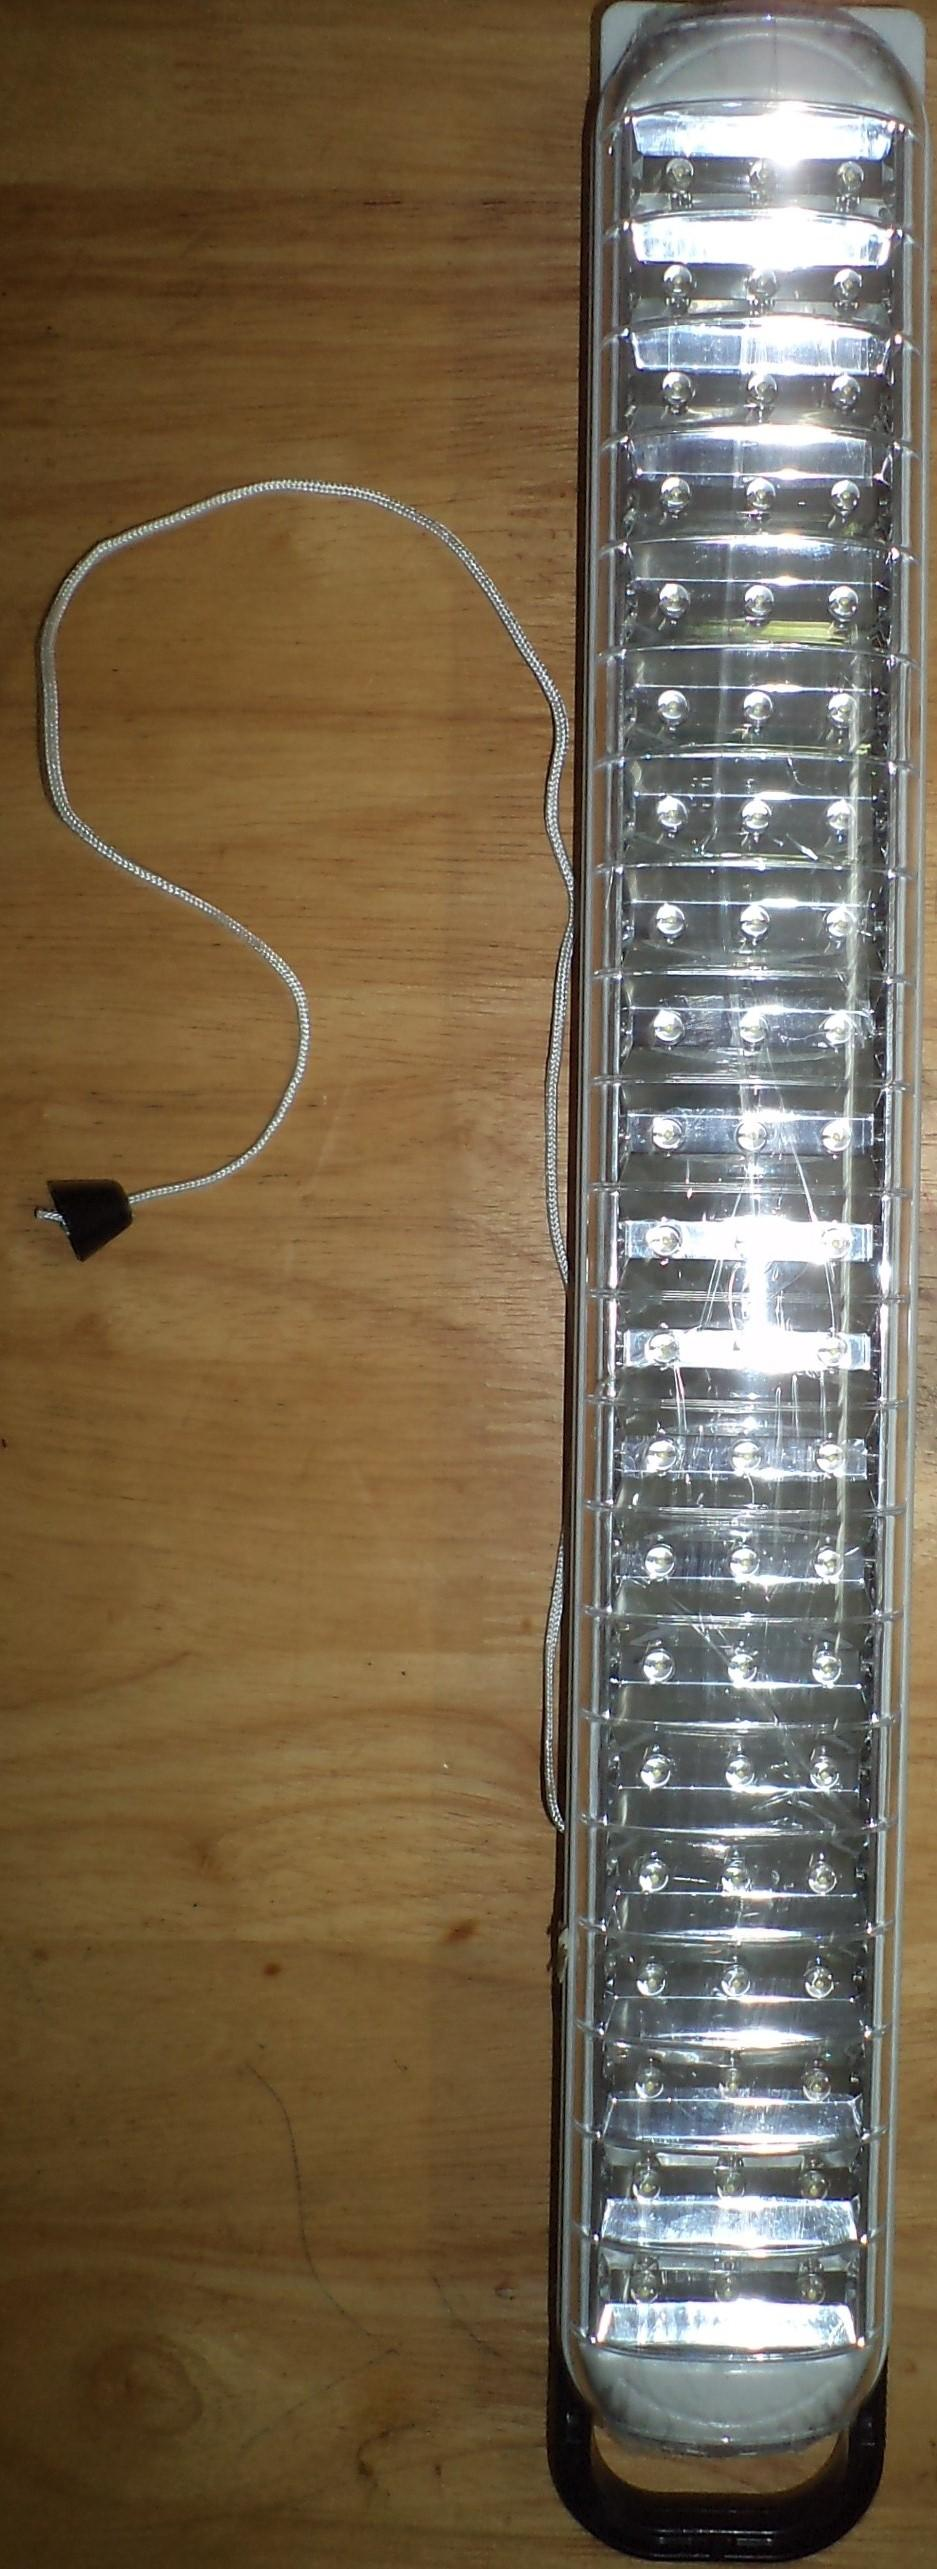 63 LEDs RECHARGEABLE EMERGENGY LIGHT